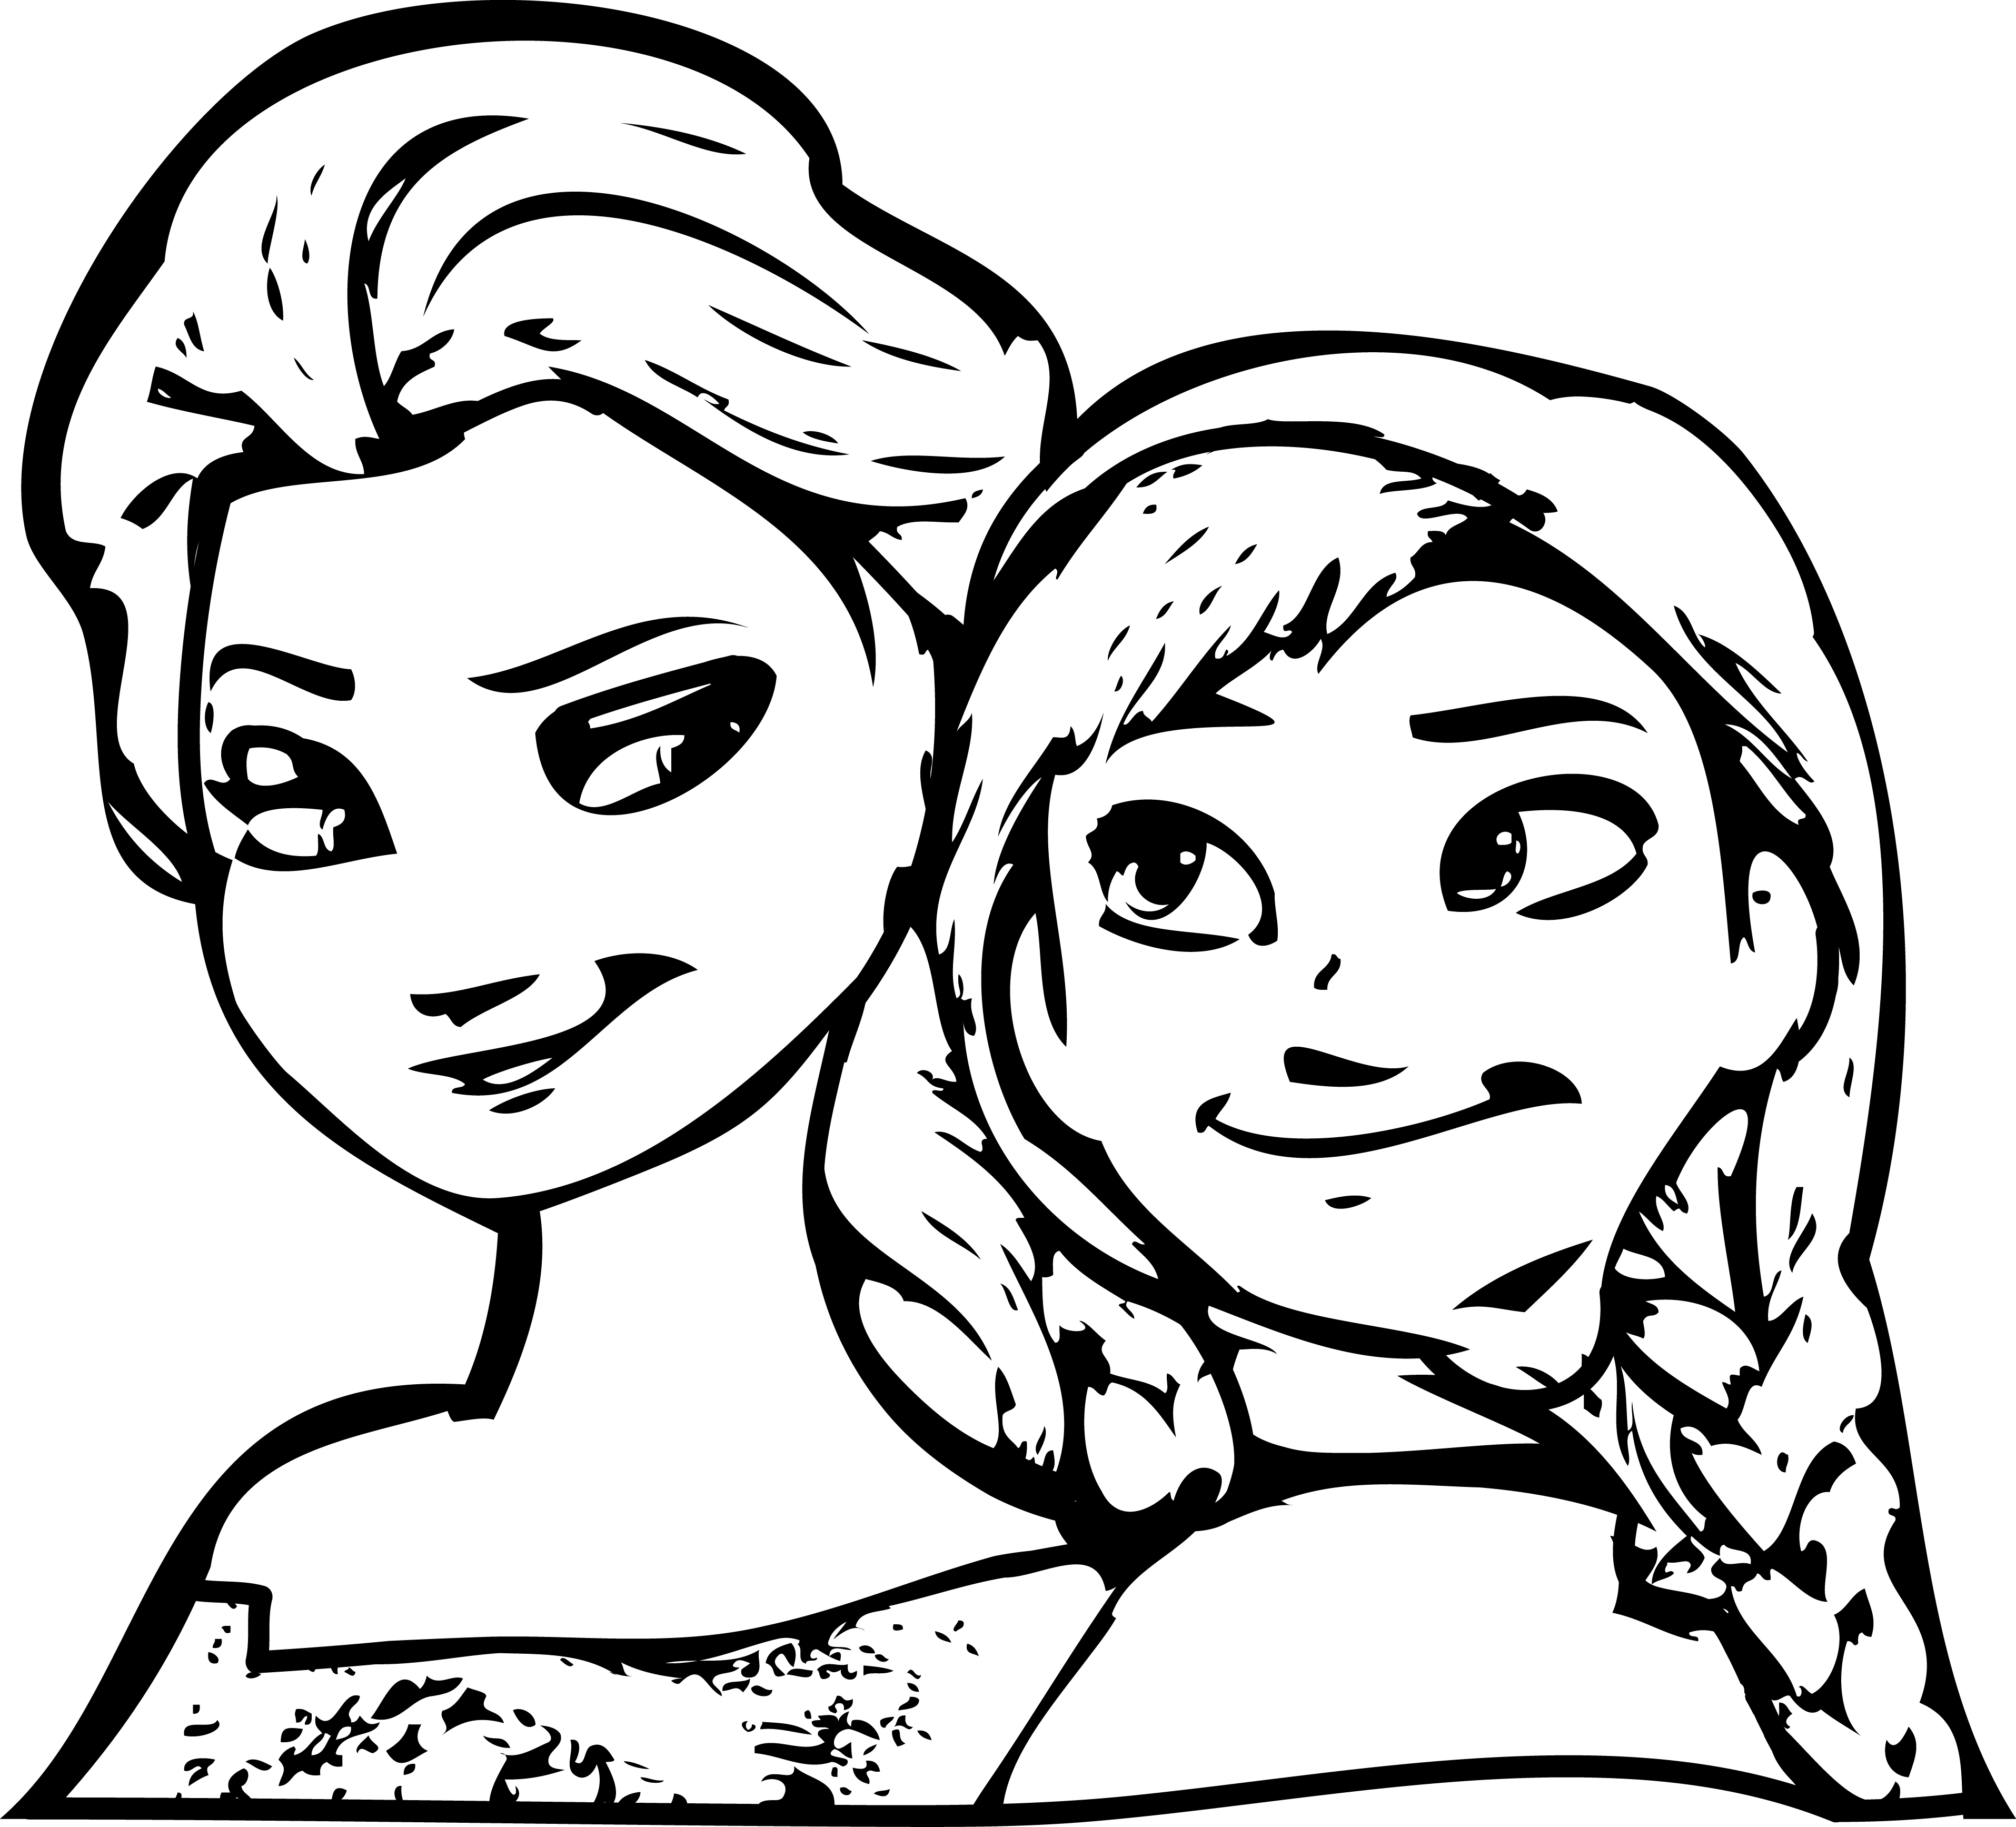 elsa and anna pictures to color elsa and anna coloring pages the sun flower pages elsa pictures color anna and to